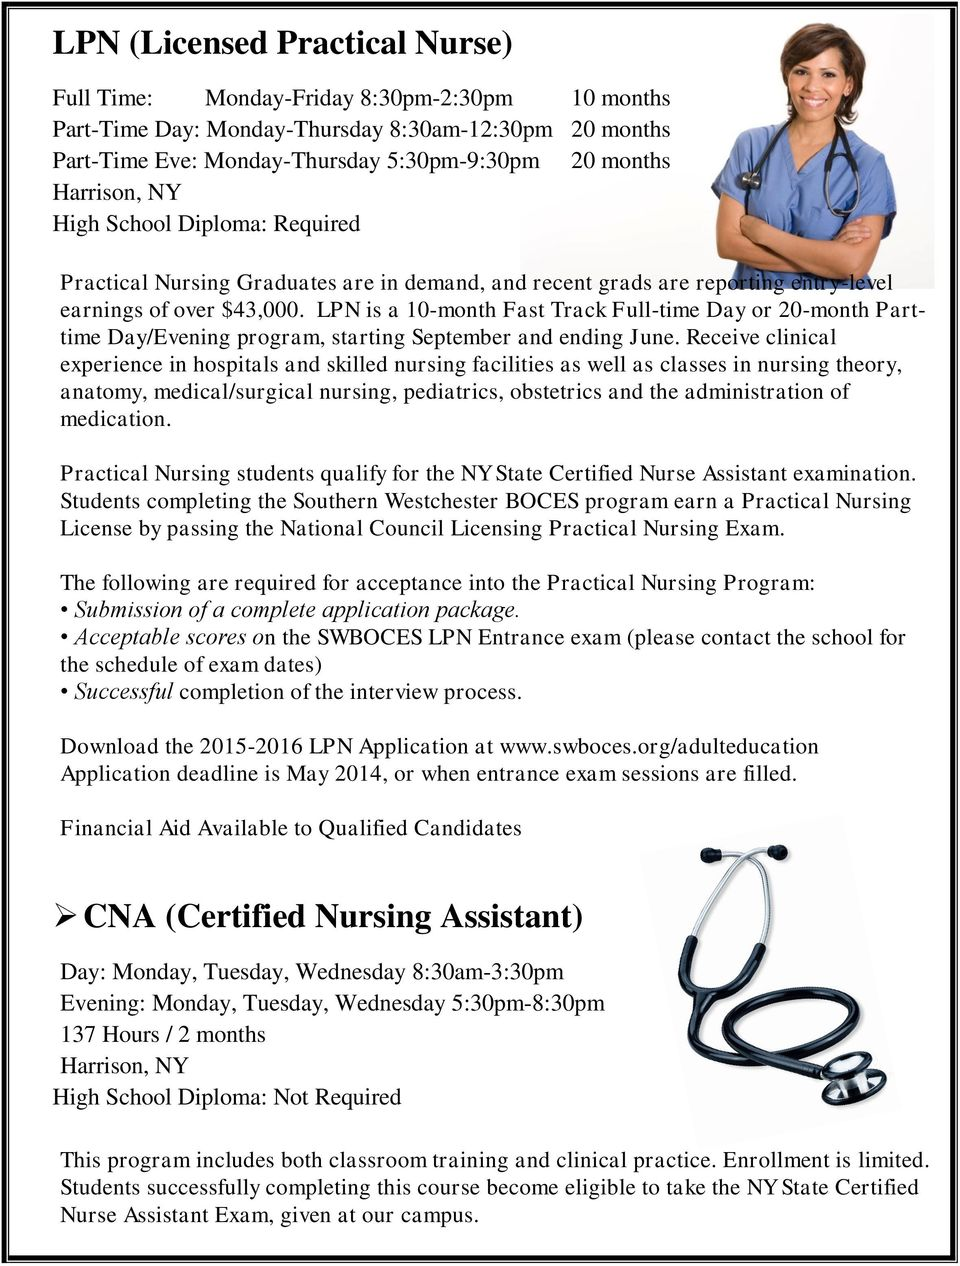 LPN is a 10-month Fast Track Full-time Day or 20-month Parttime Day/Evening program, starting September and ending June.